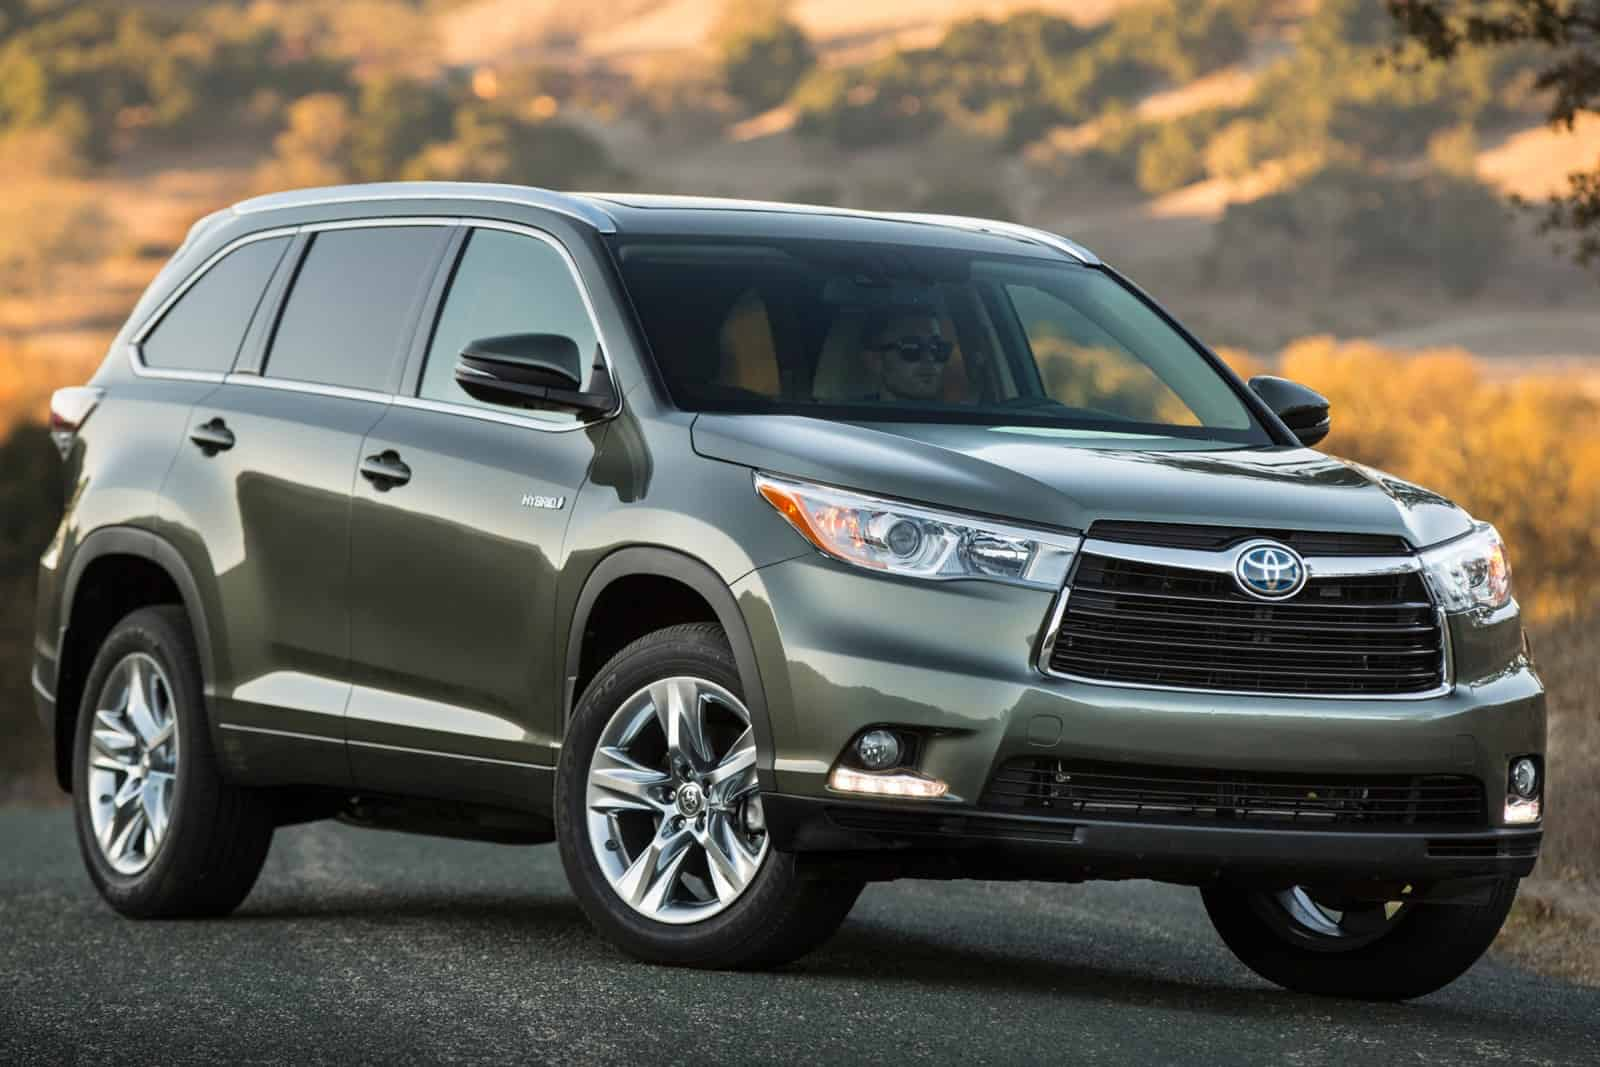 Toyota 4Runner, Highlander, and Sienna – reliable cars